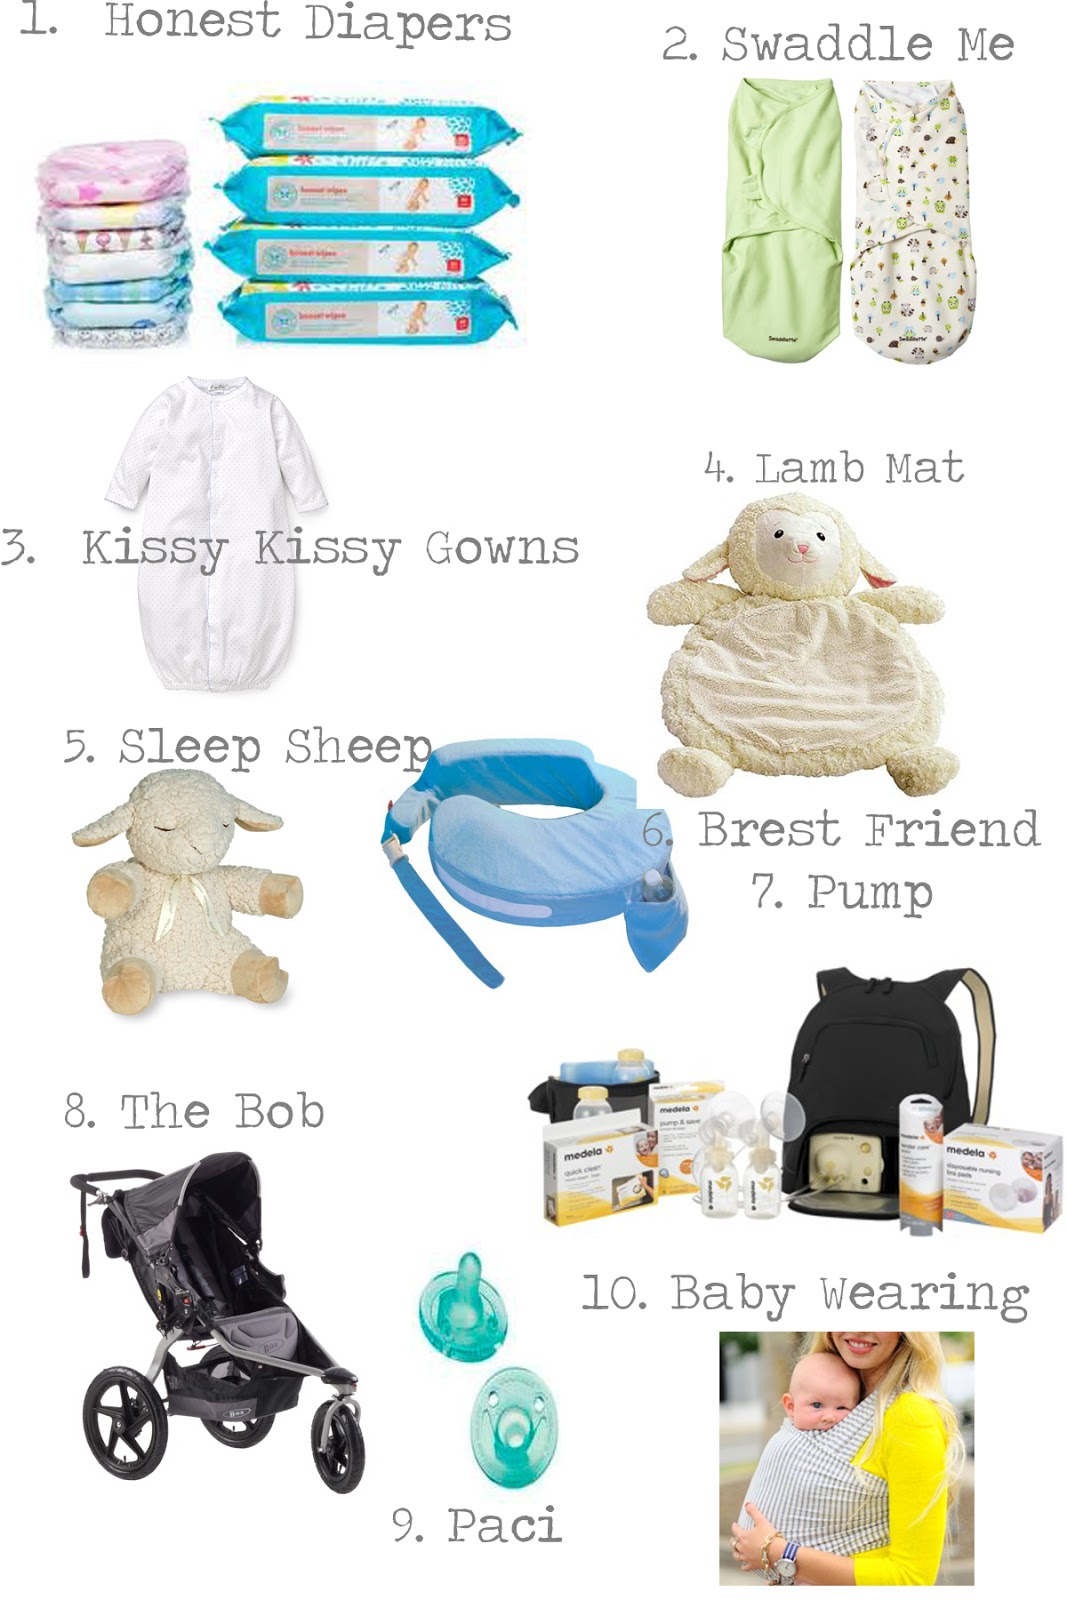 You'll need to make a plan for baby to sleep somewhere. A bassinet cradle or three-sided crib (co-sleeper) can be a good option for the first few months if you prefer to start small. A bassinet cradle or three-sided crib (co-sleeper) can be a good option for the first few months if you prefer to start small.